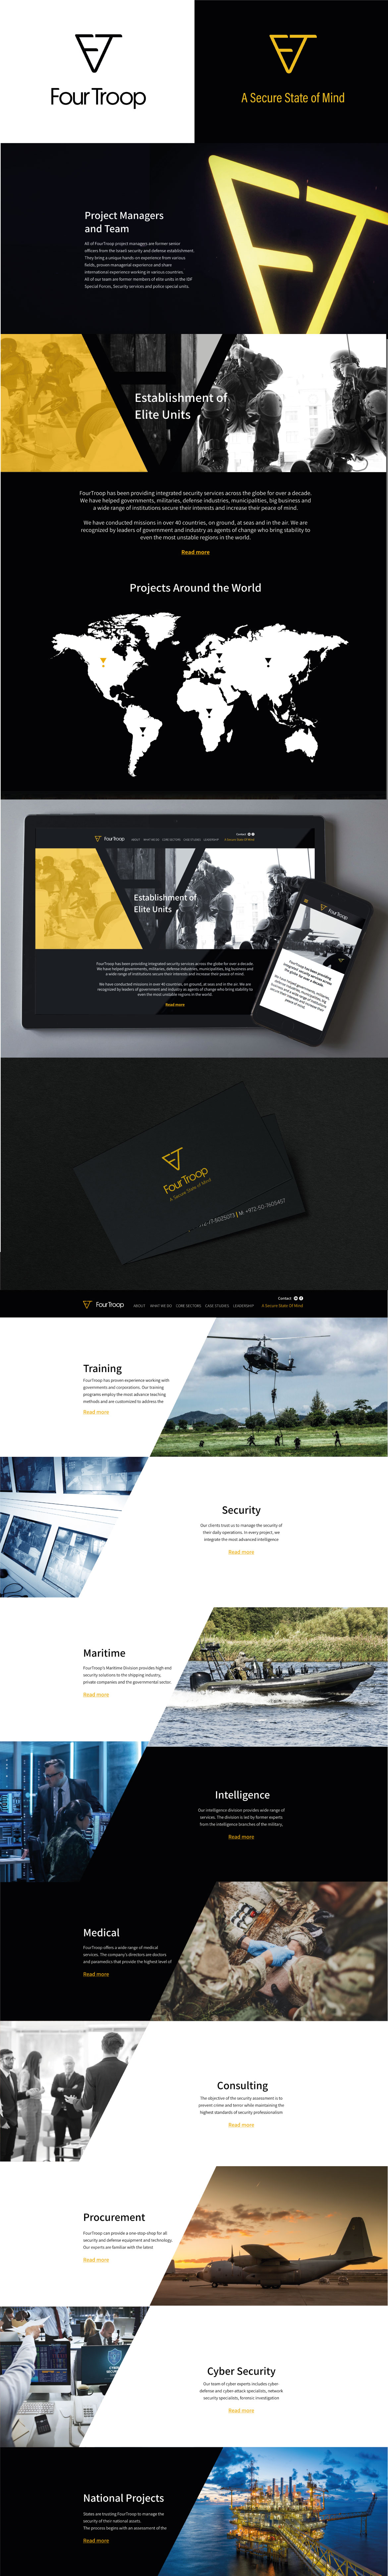 NFH_4troop_Branding_Logodesign_digital_Webdesign